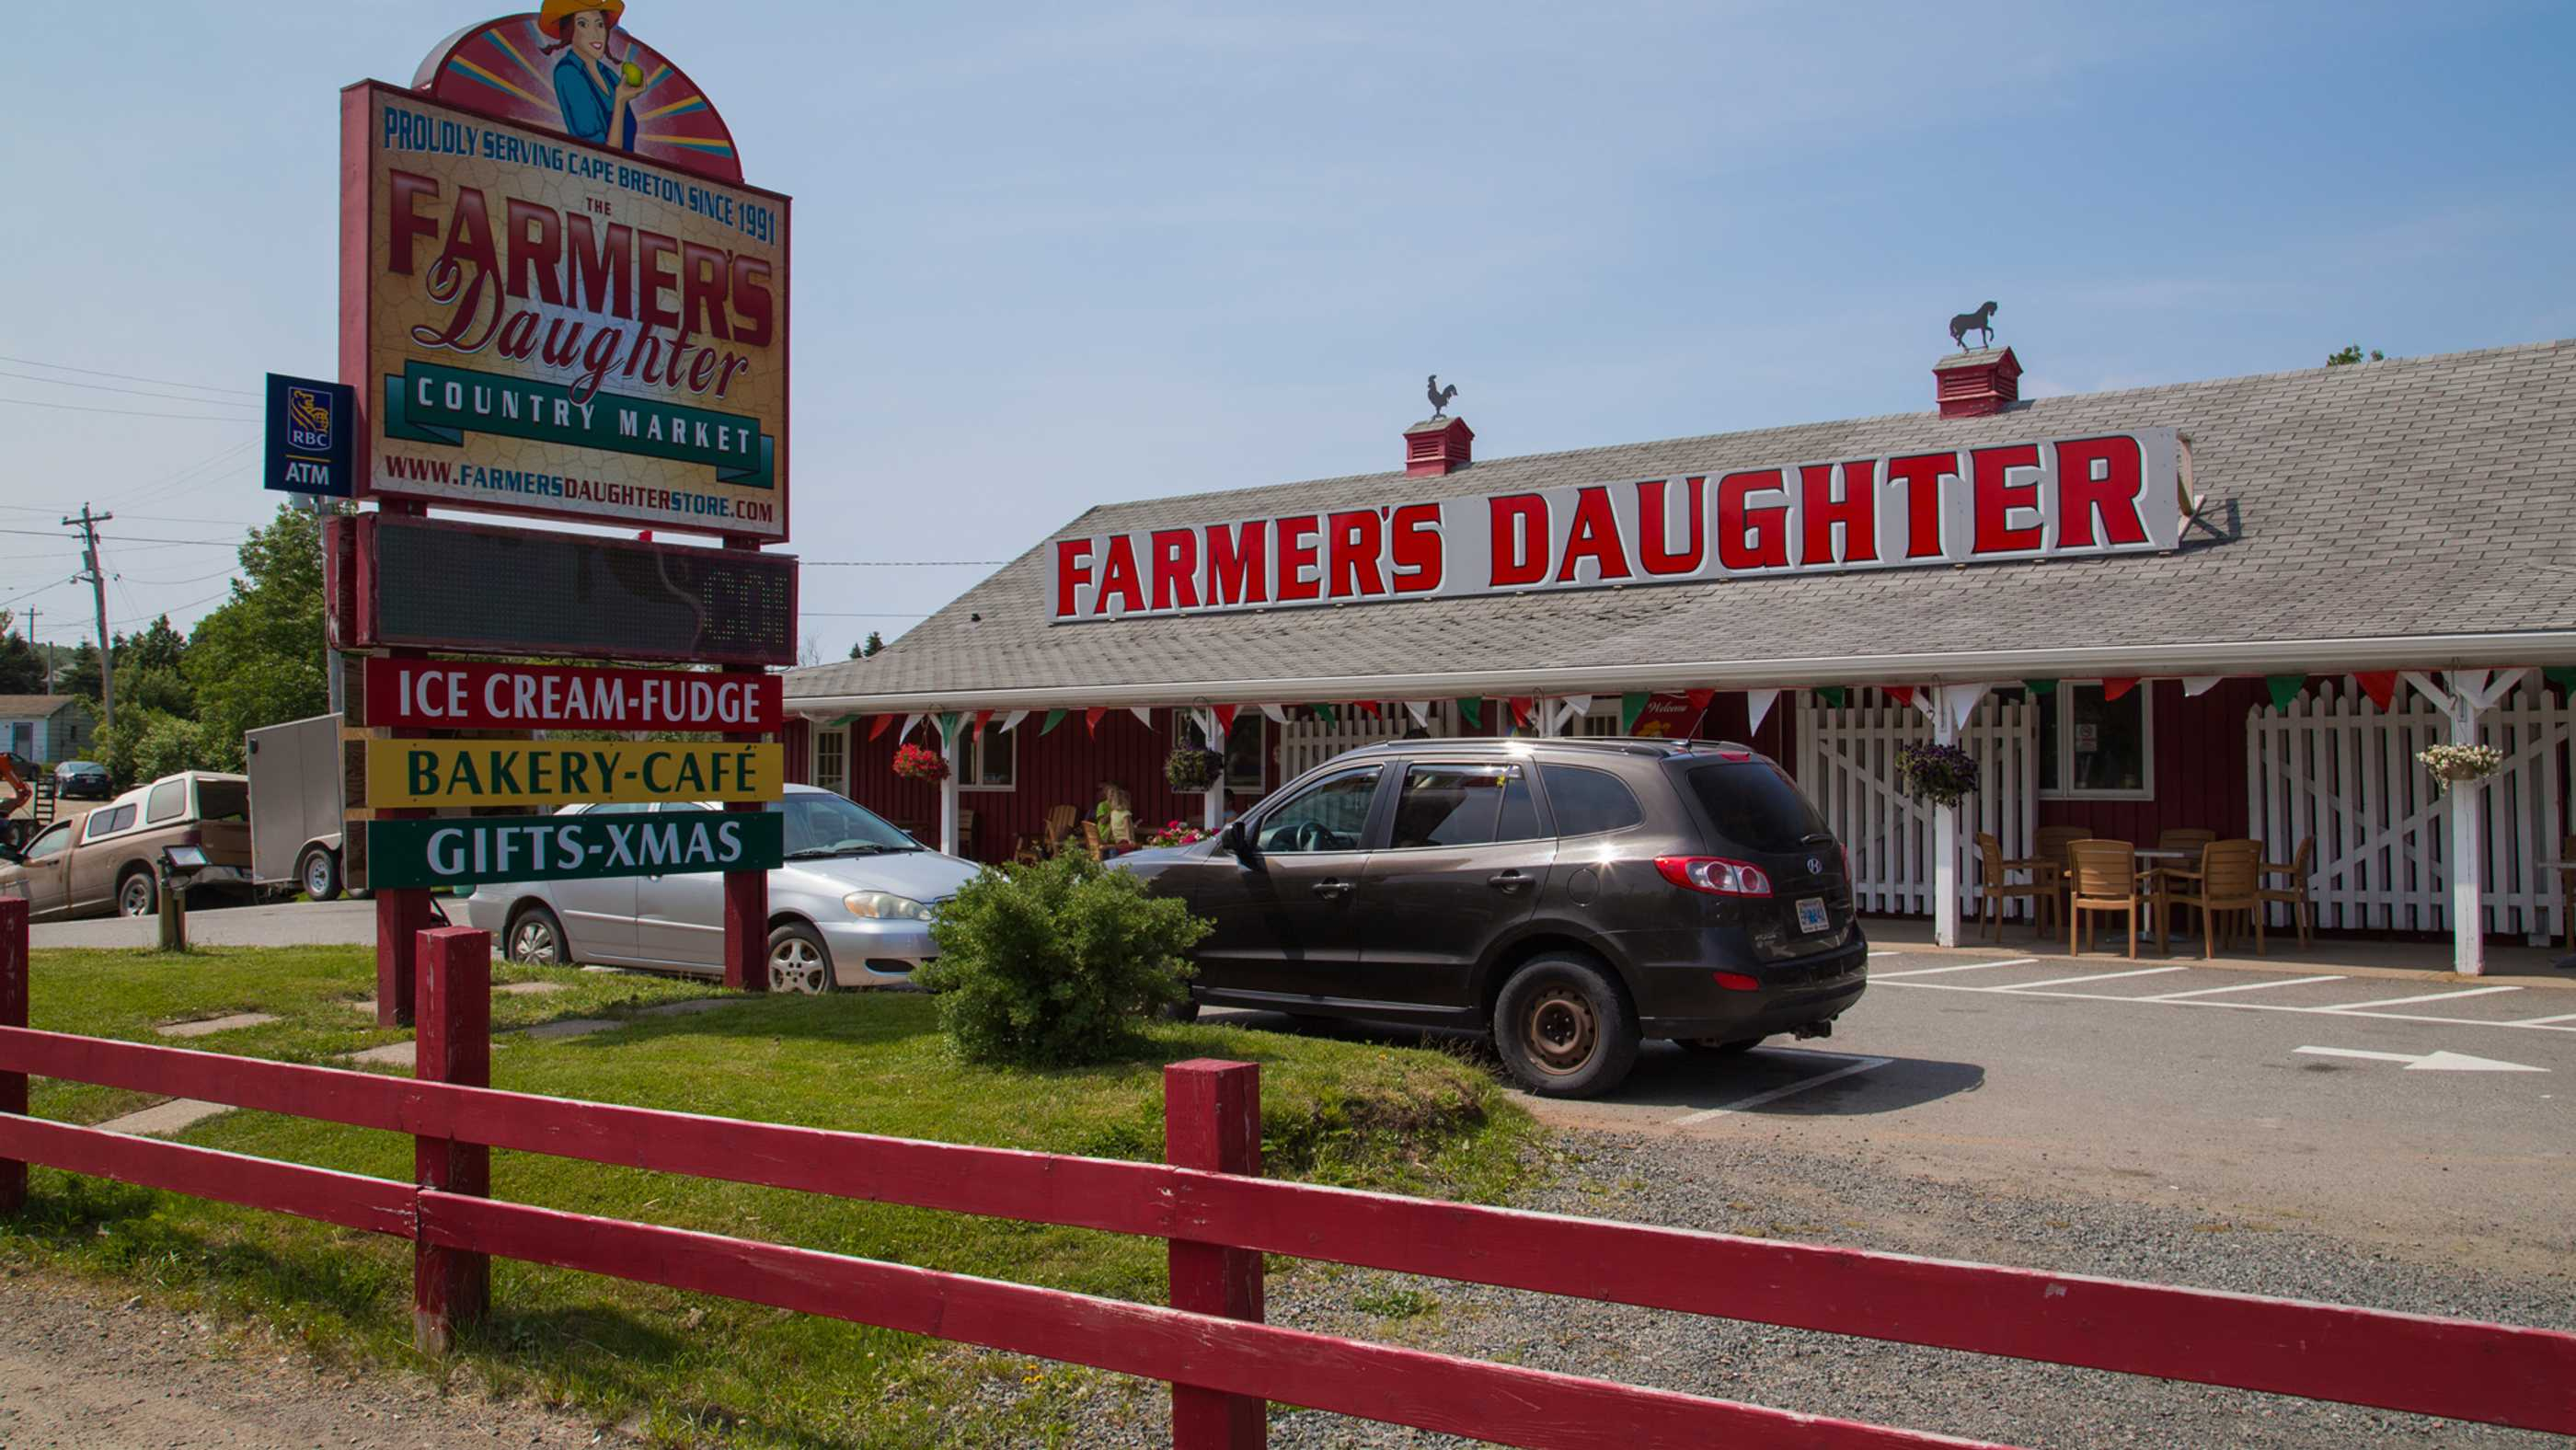 Der Farmers Daughter Country Market